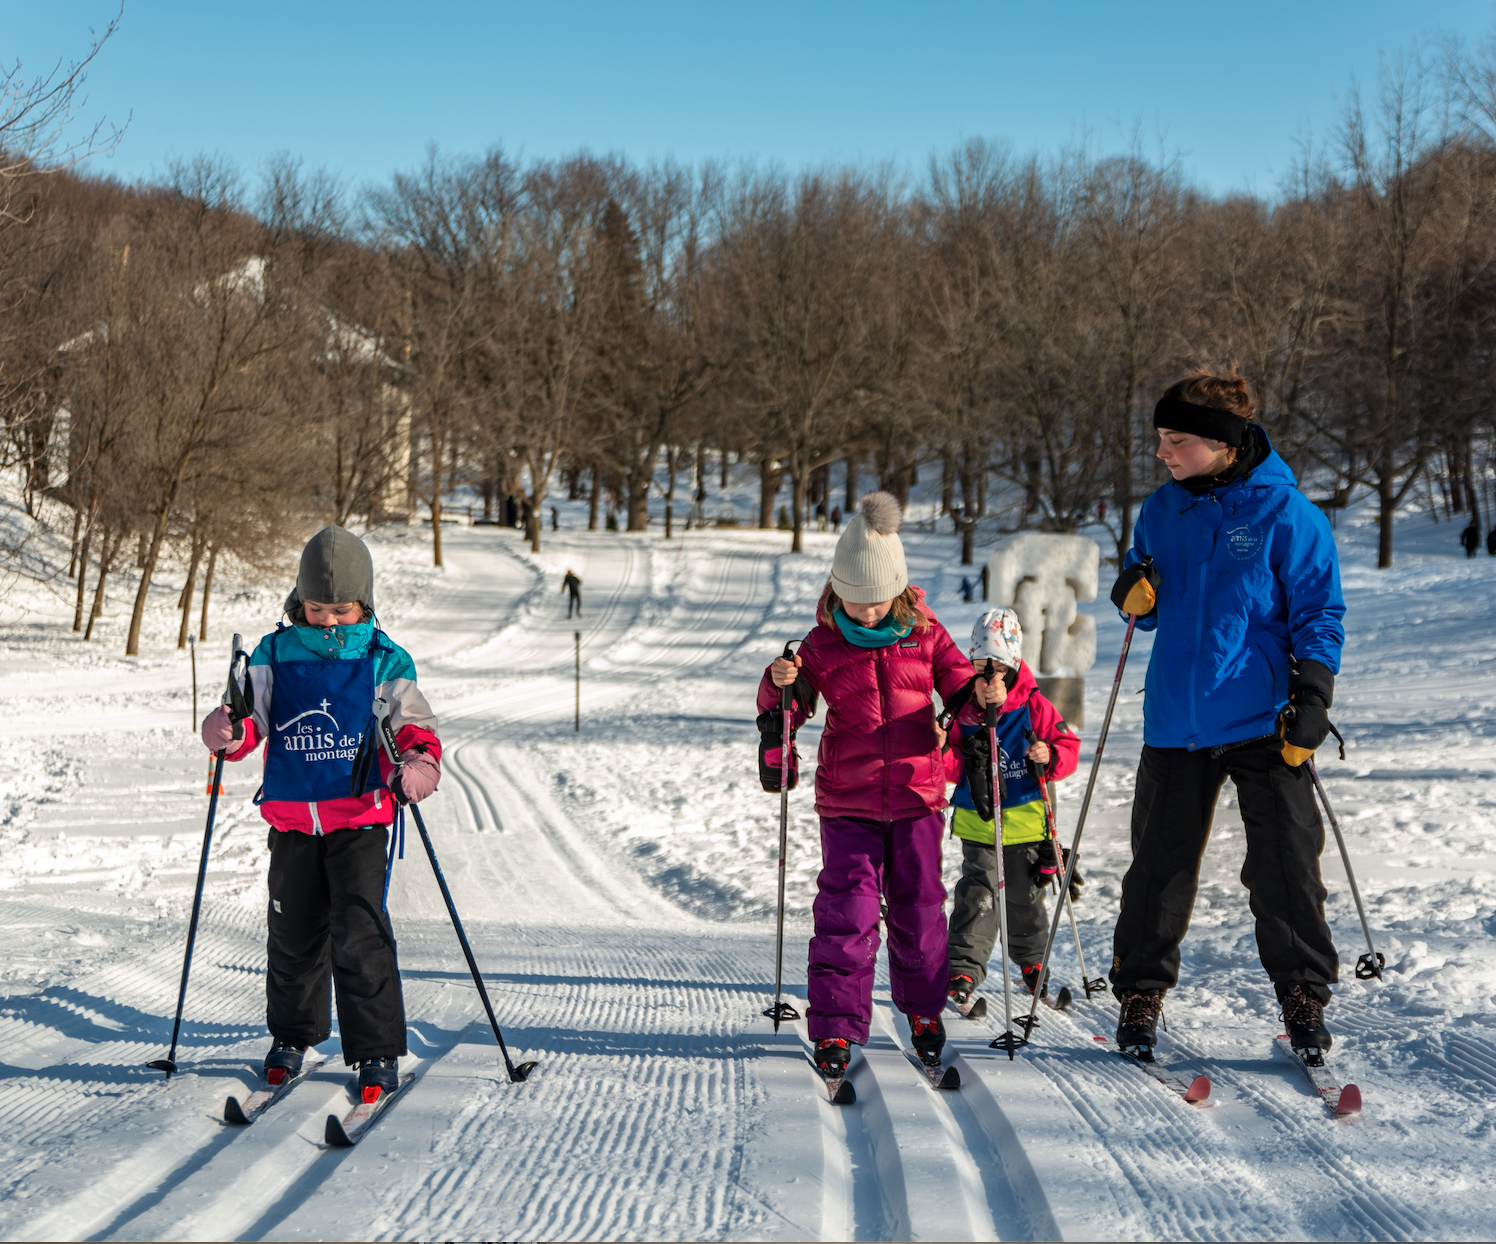 Reserve Your Snowshoes and Skis Online